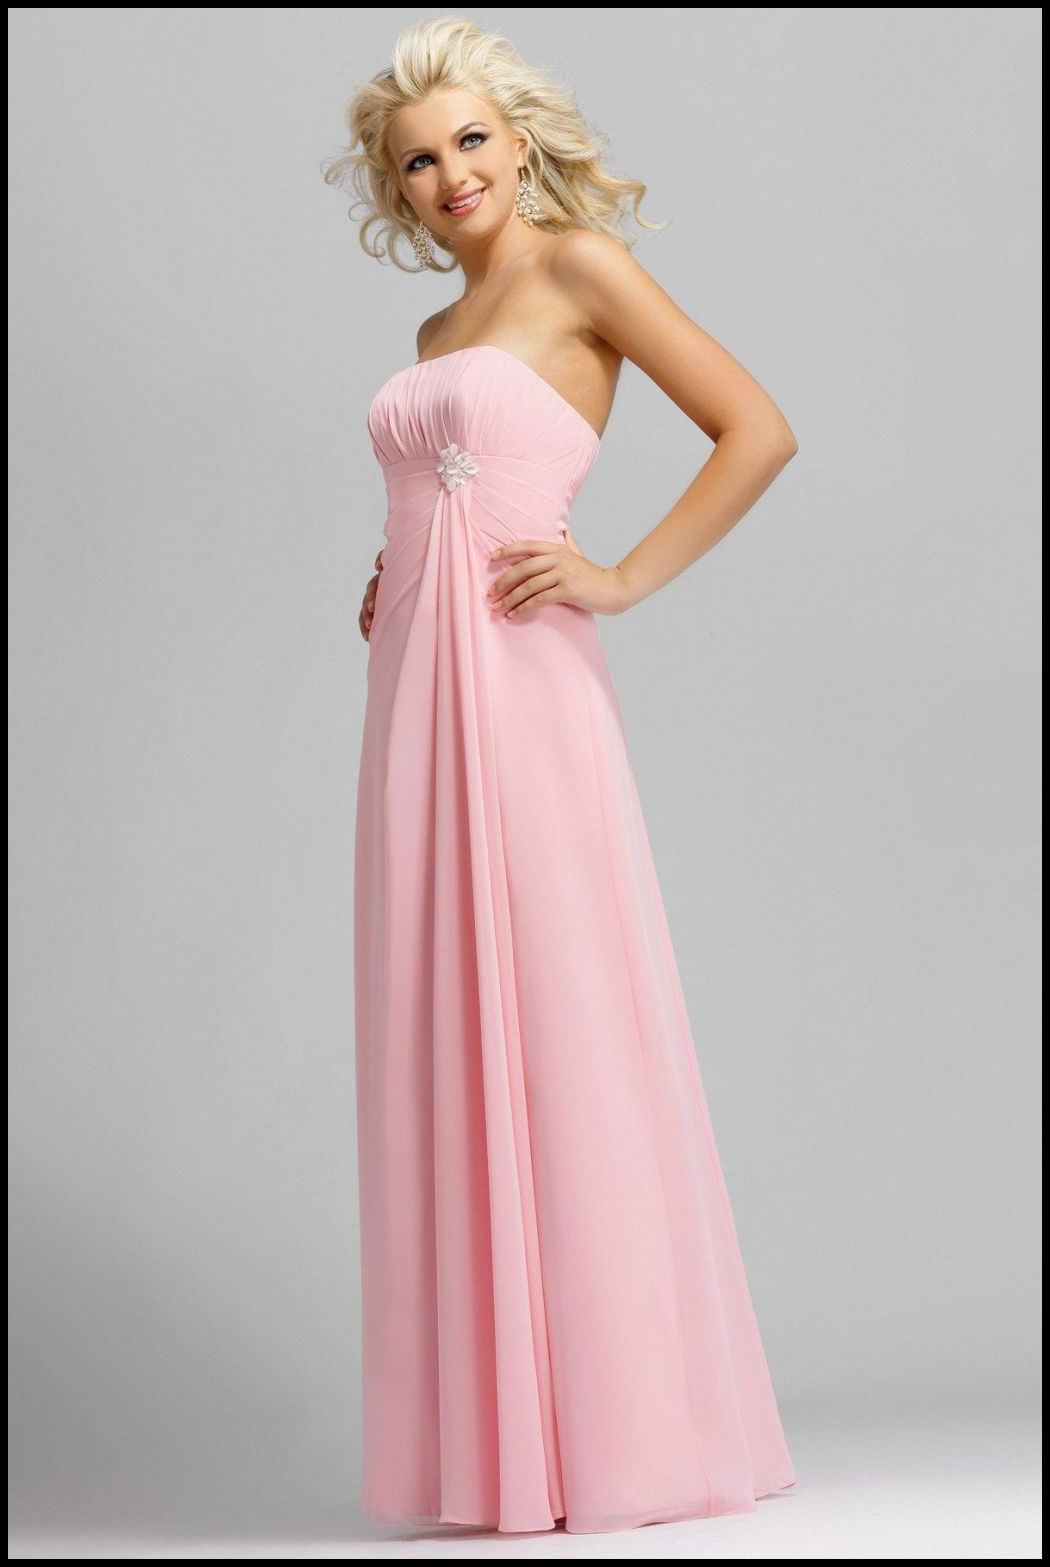 Pink prom dress designs wedding dresses simple wedding for Pink homecoming dresses